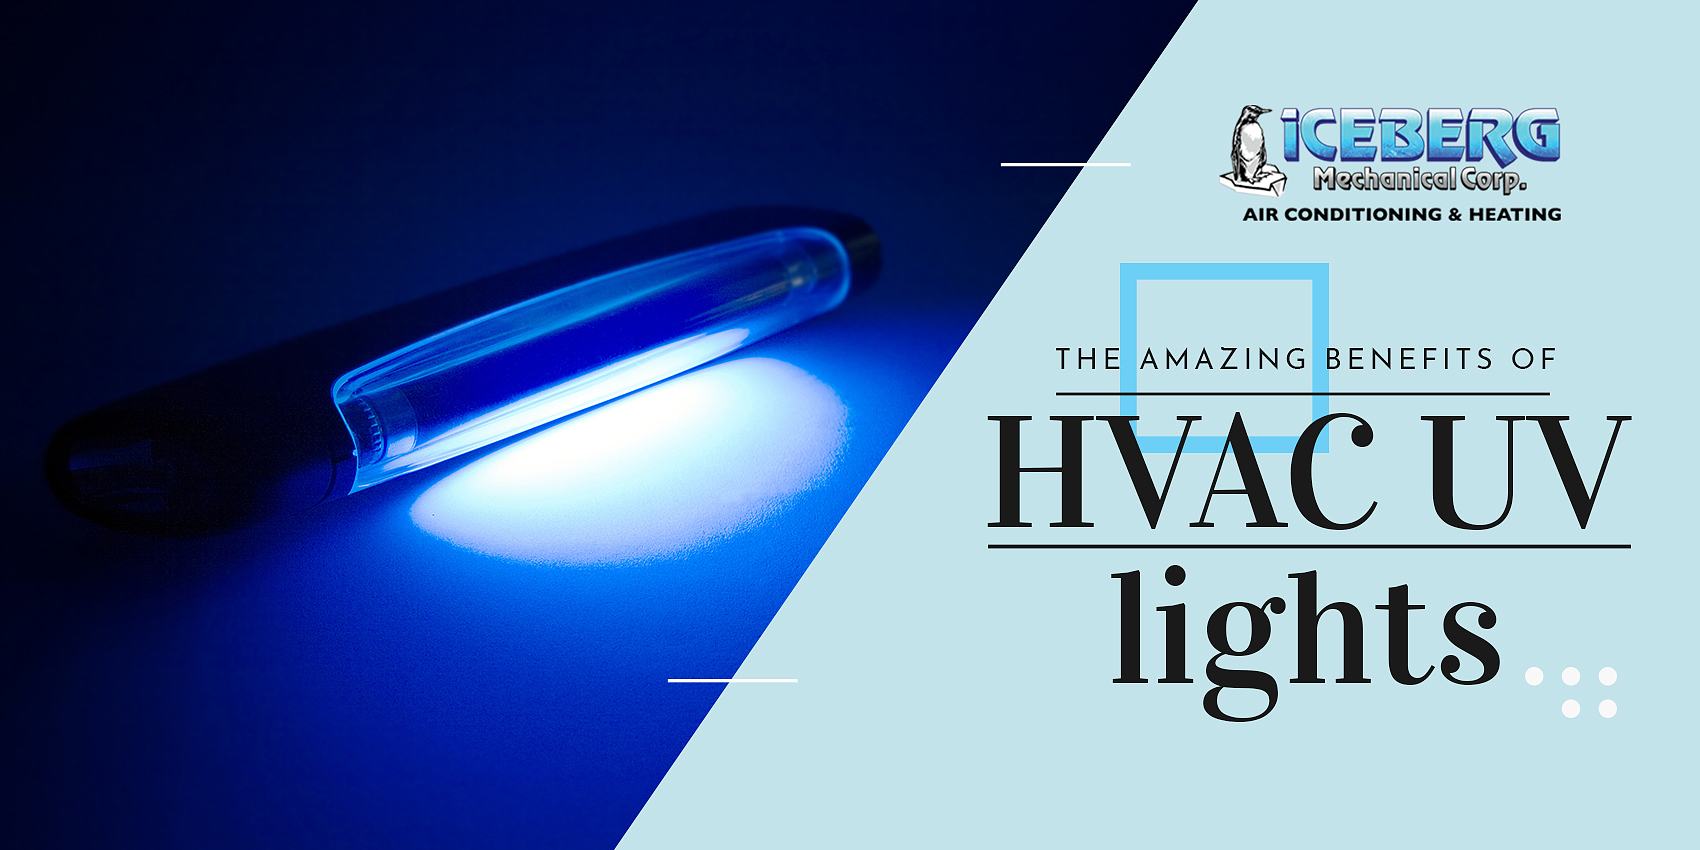 The Amazing Benefits of HVAC UV Lights